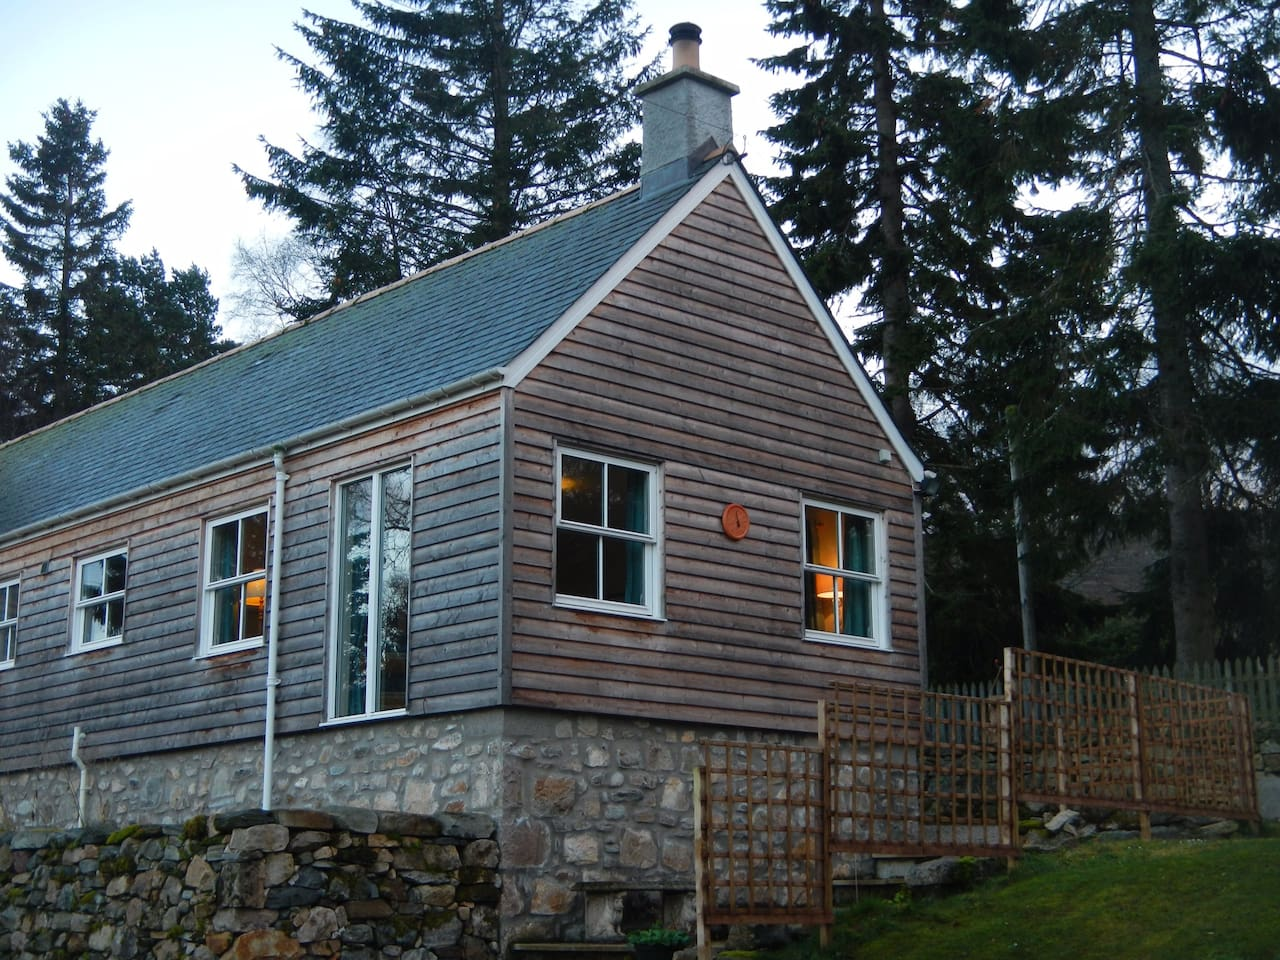 Timber clad cottage located on the edge of the Cairngorm Mountains.